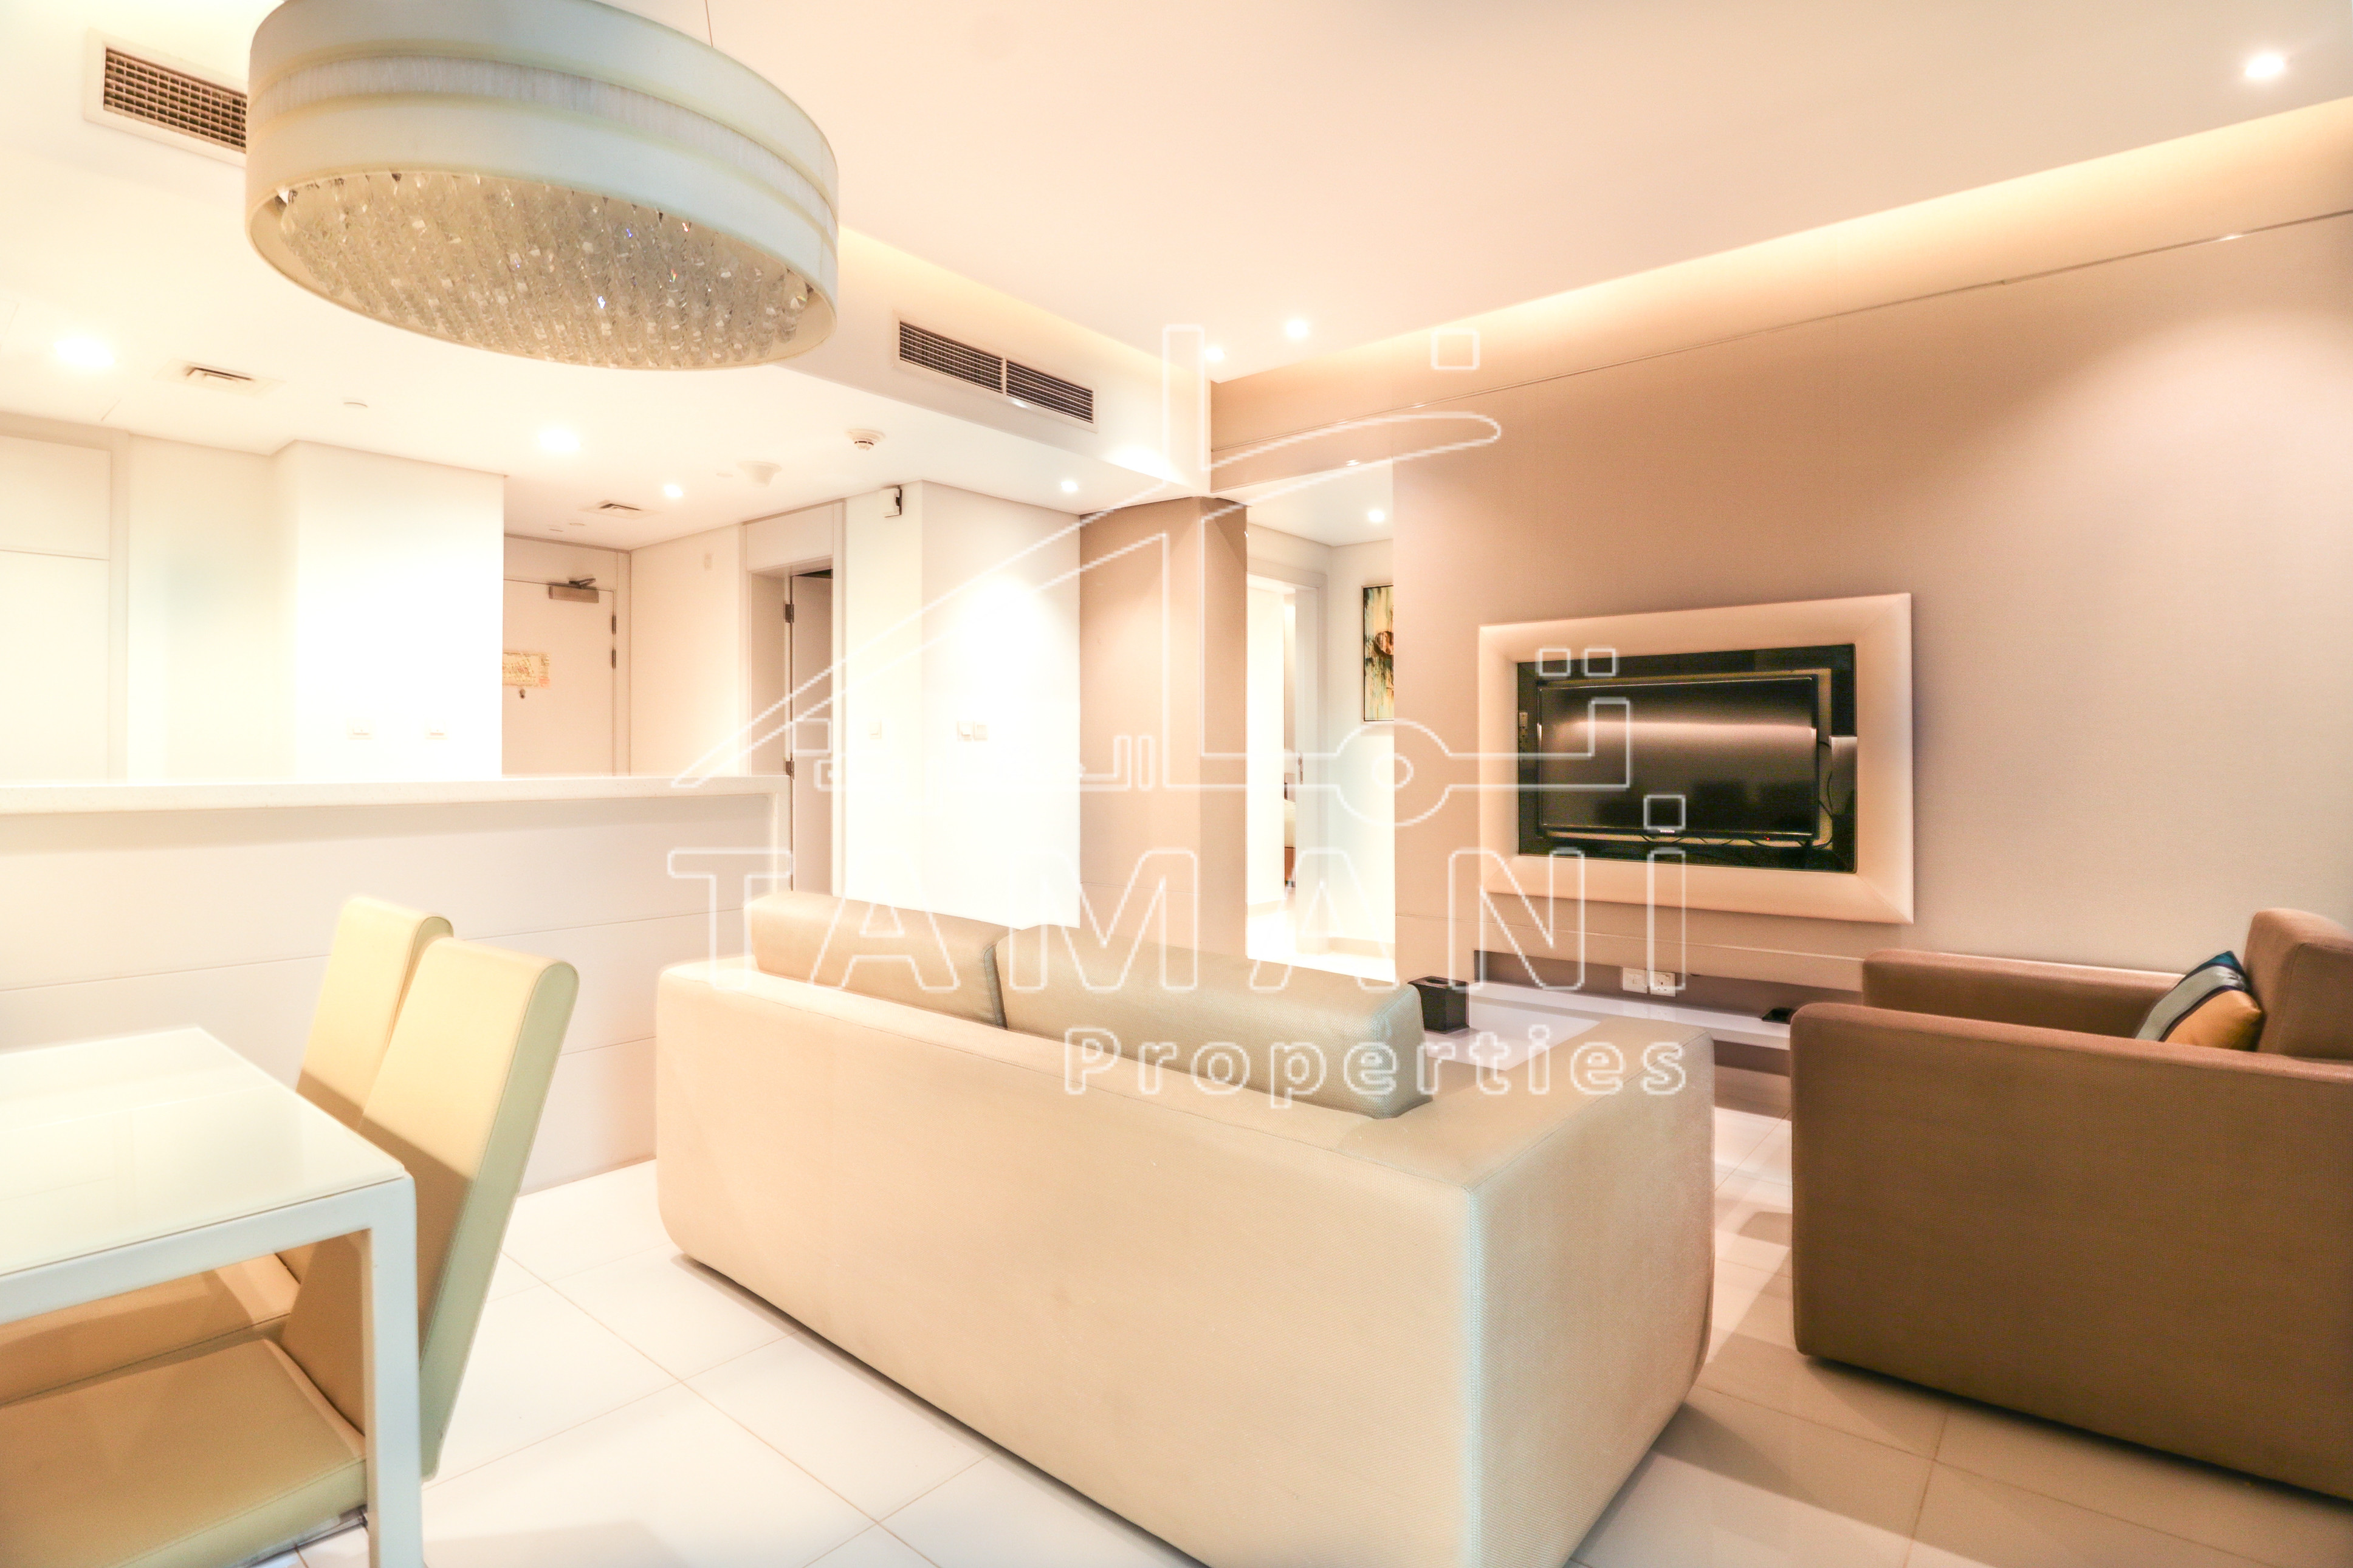 Hot Deal! Hotel Apt!2Bed Only for 1.025M - DAMAC Maison The Vogue